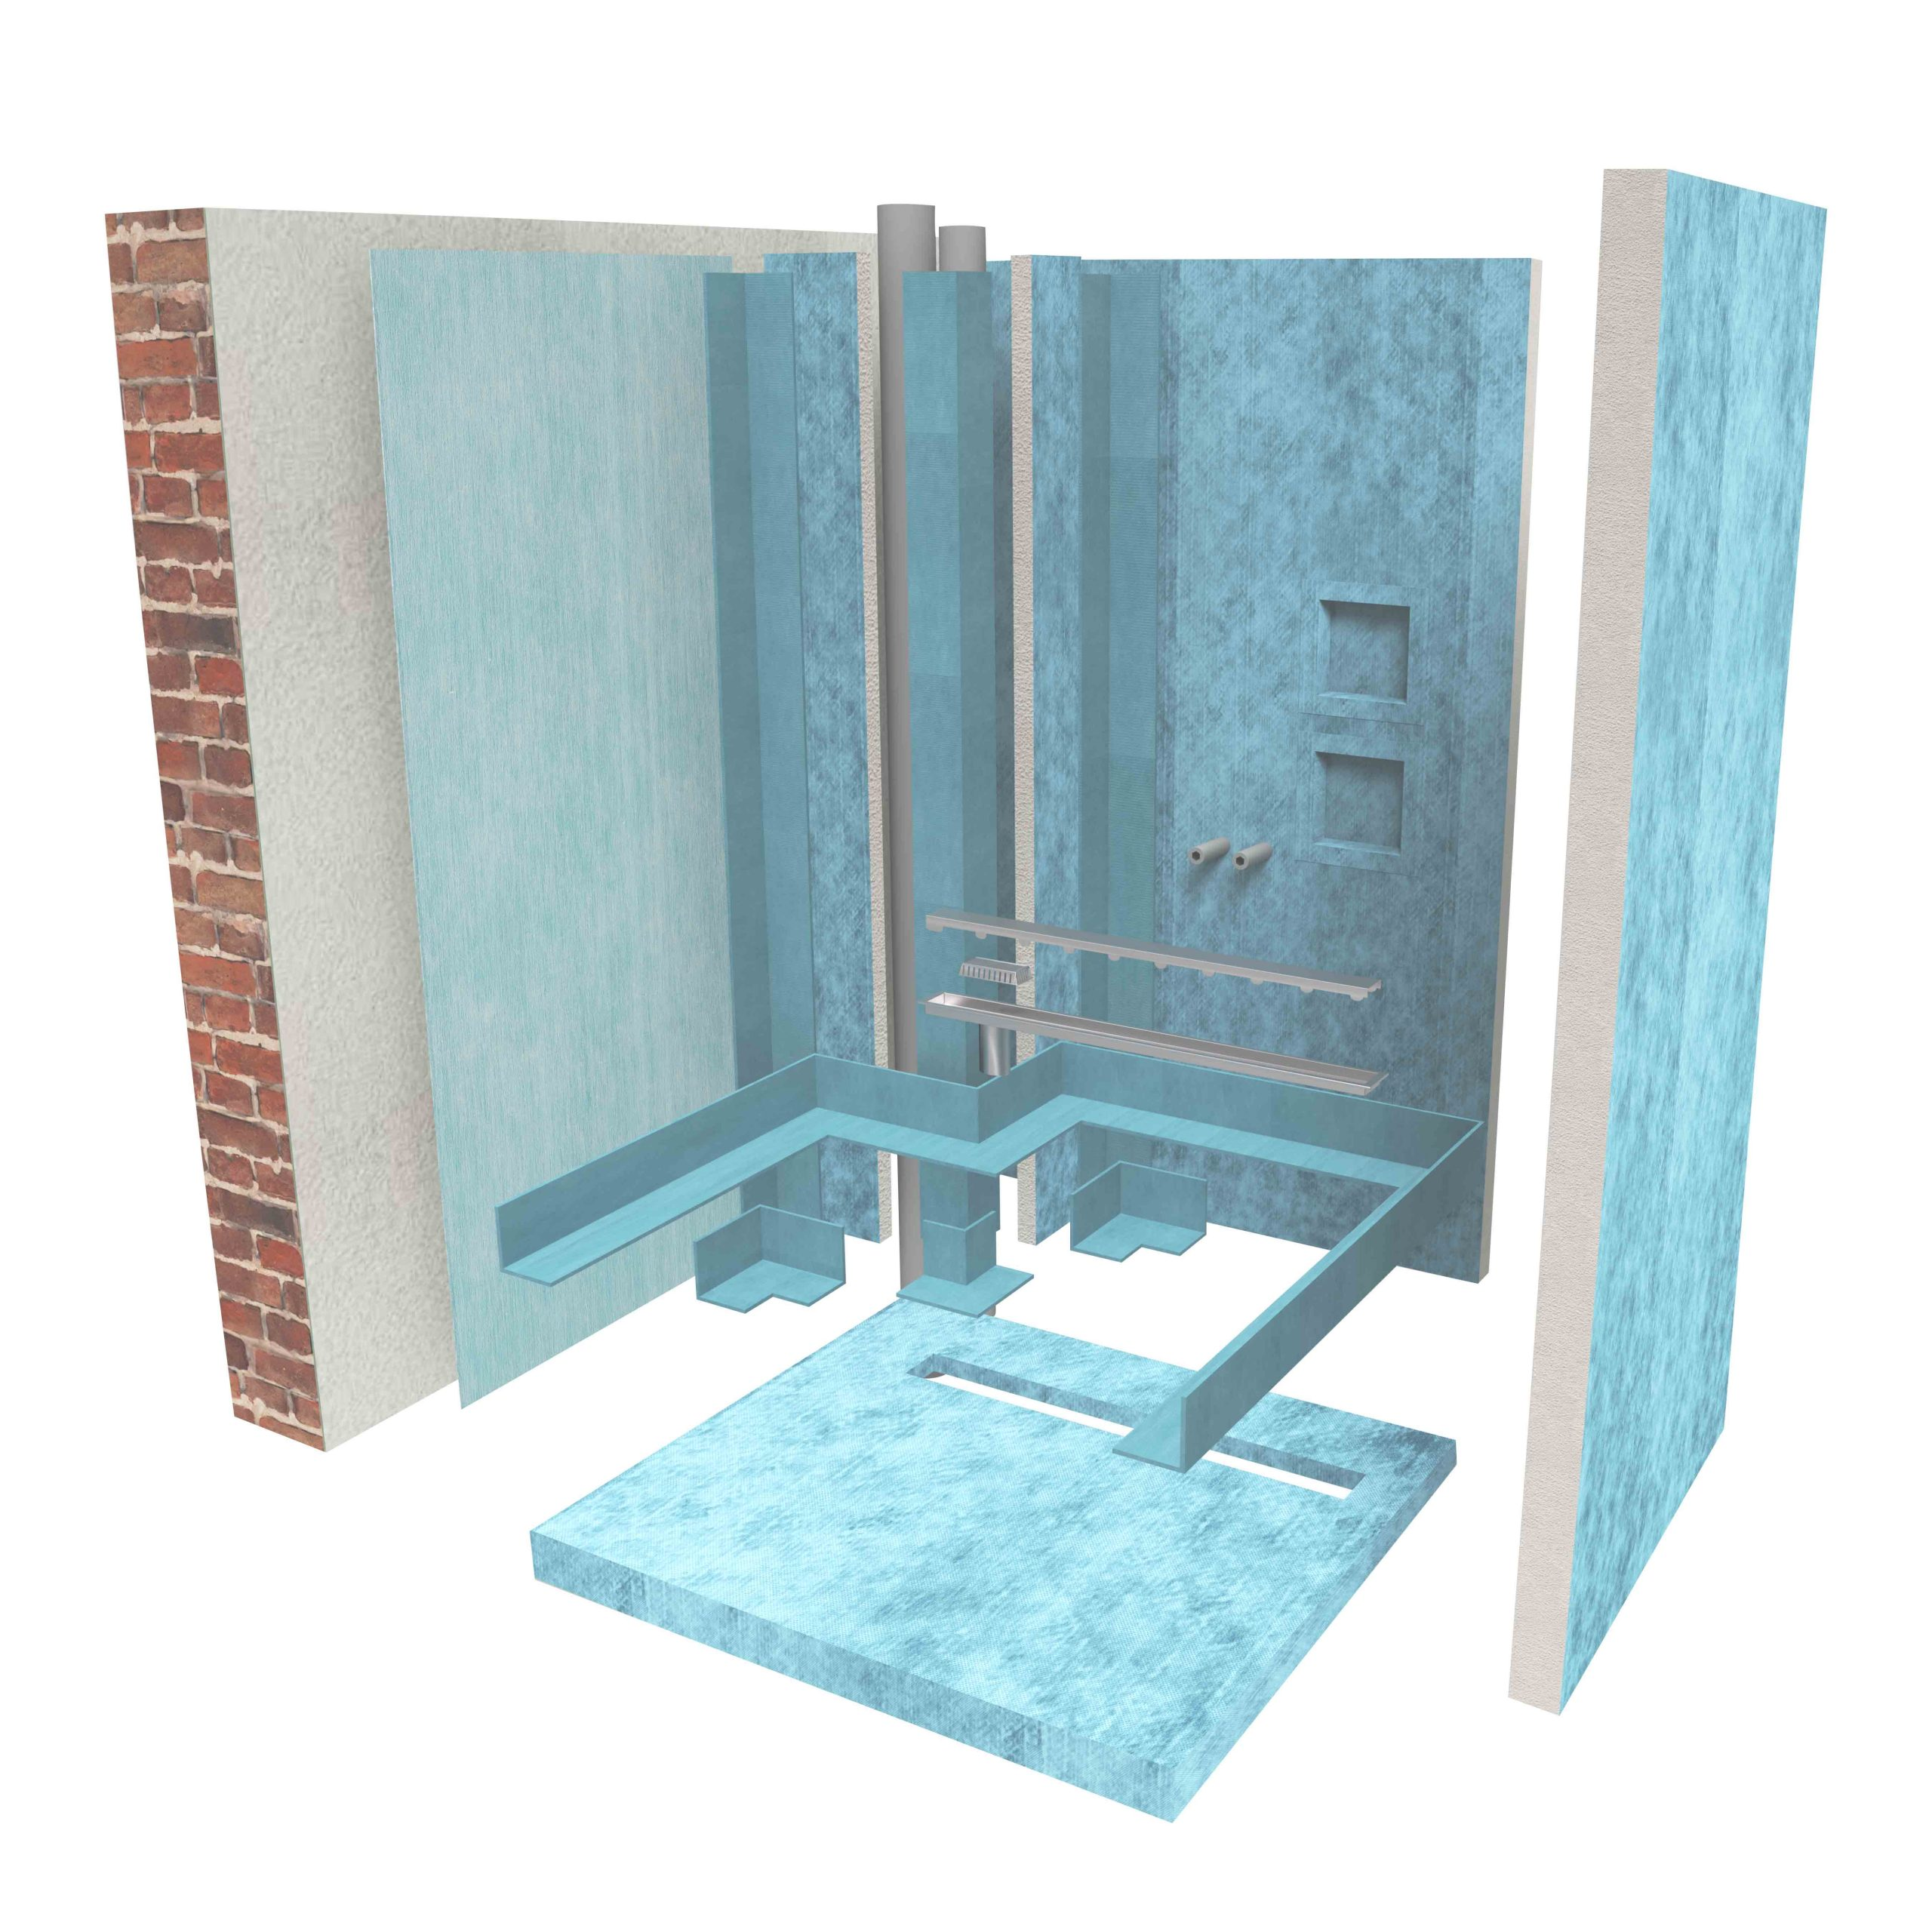 Waterproofing of the shower with panels